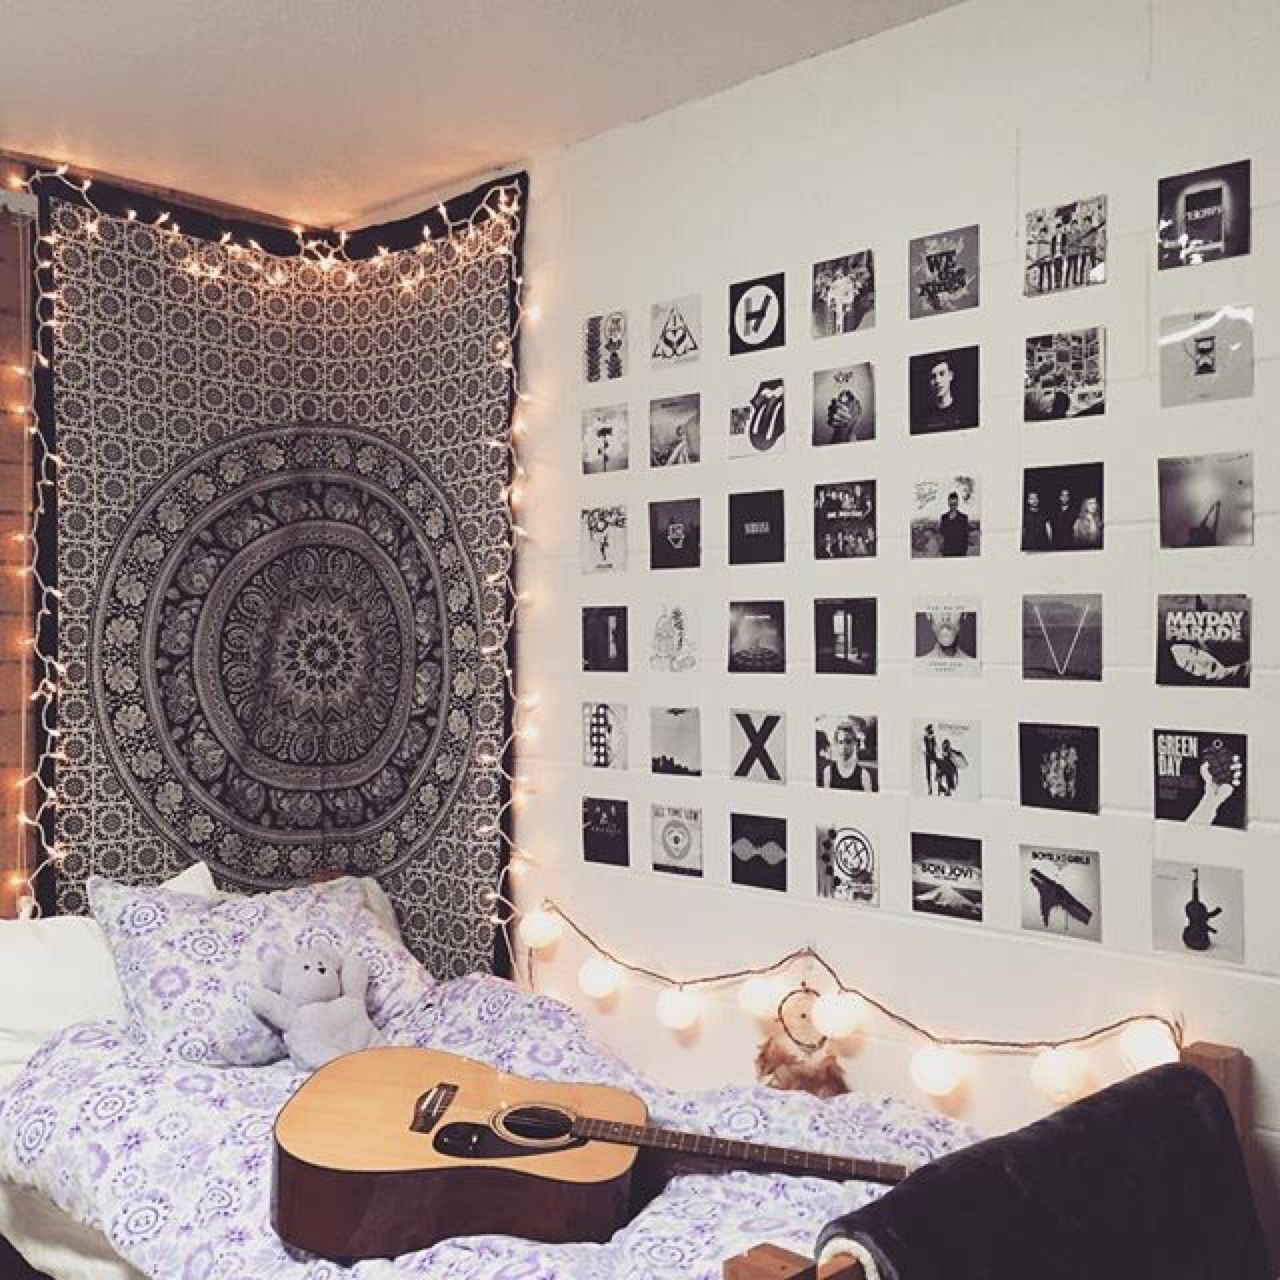 Bedroom wall decoration diy - Source Myroomspo Tapestry Bedroom Tumblr Bedroom Decoration Room Decor Diy Room Inspiration Poster Lights Fairy Lights